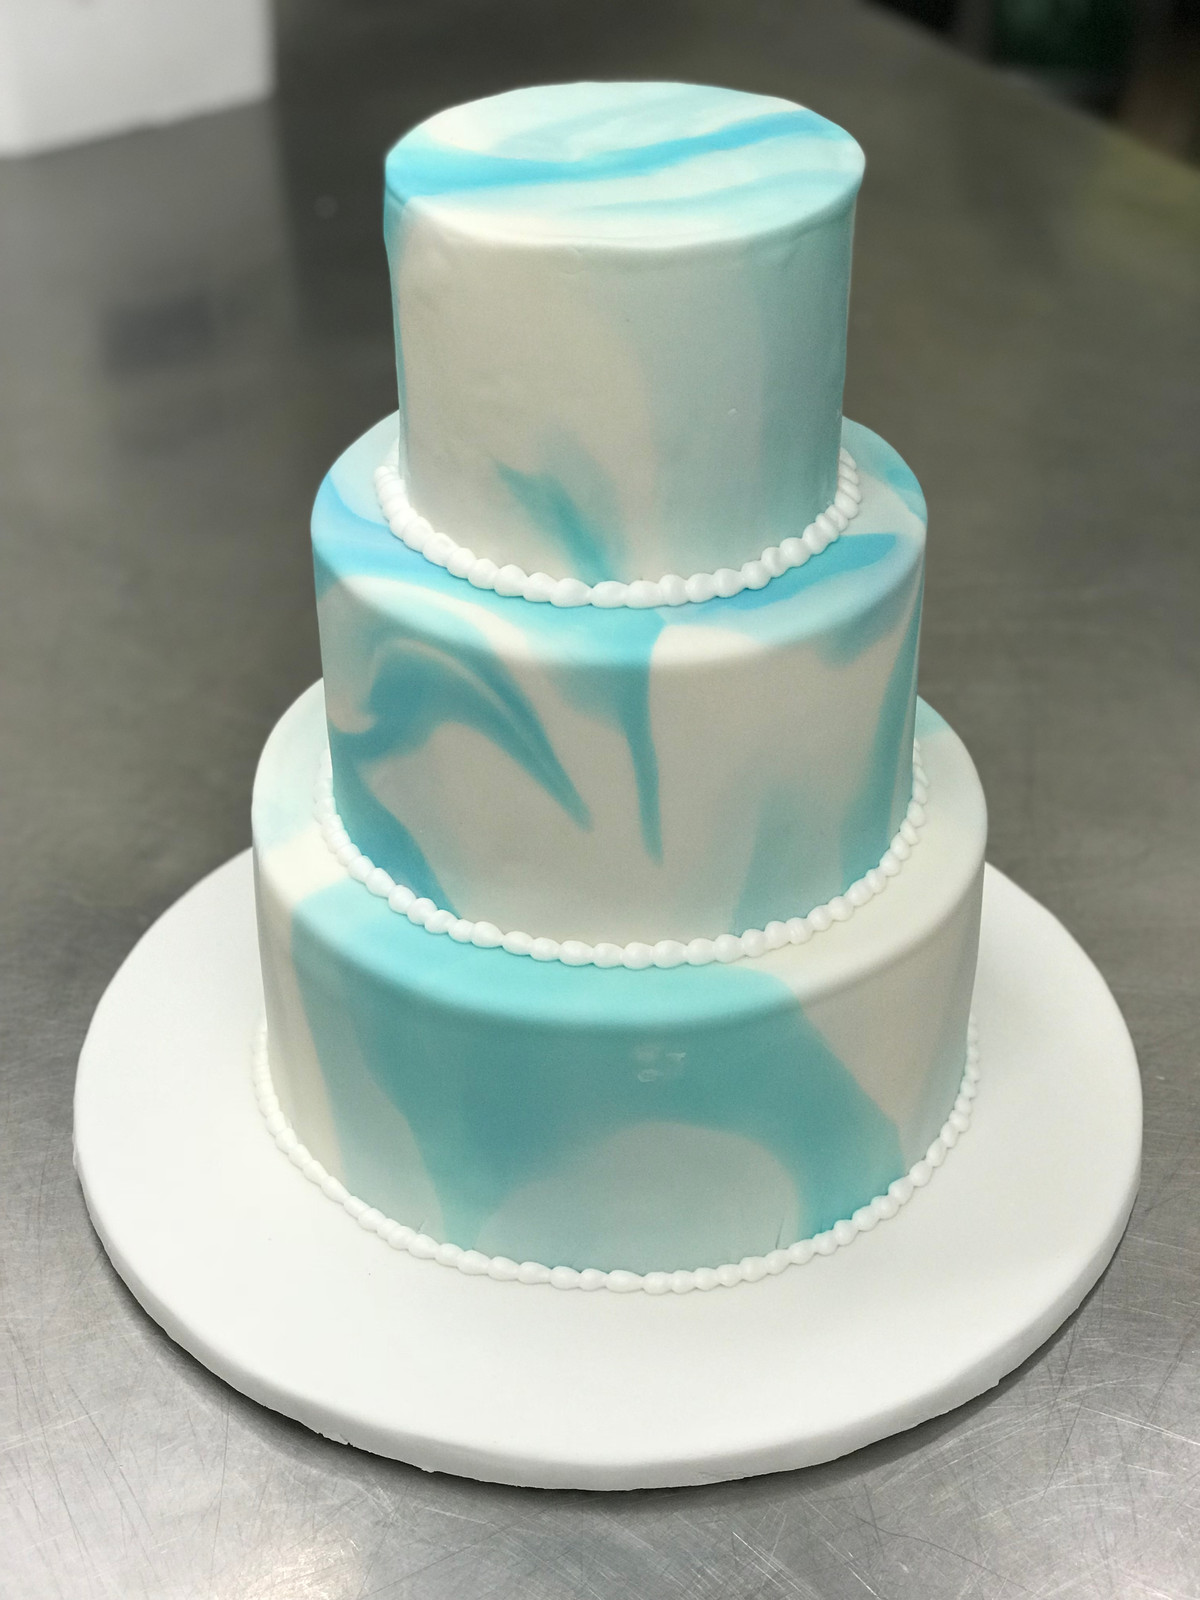 Blue And White Marble Cake